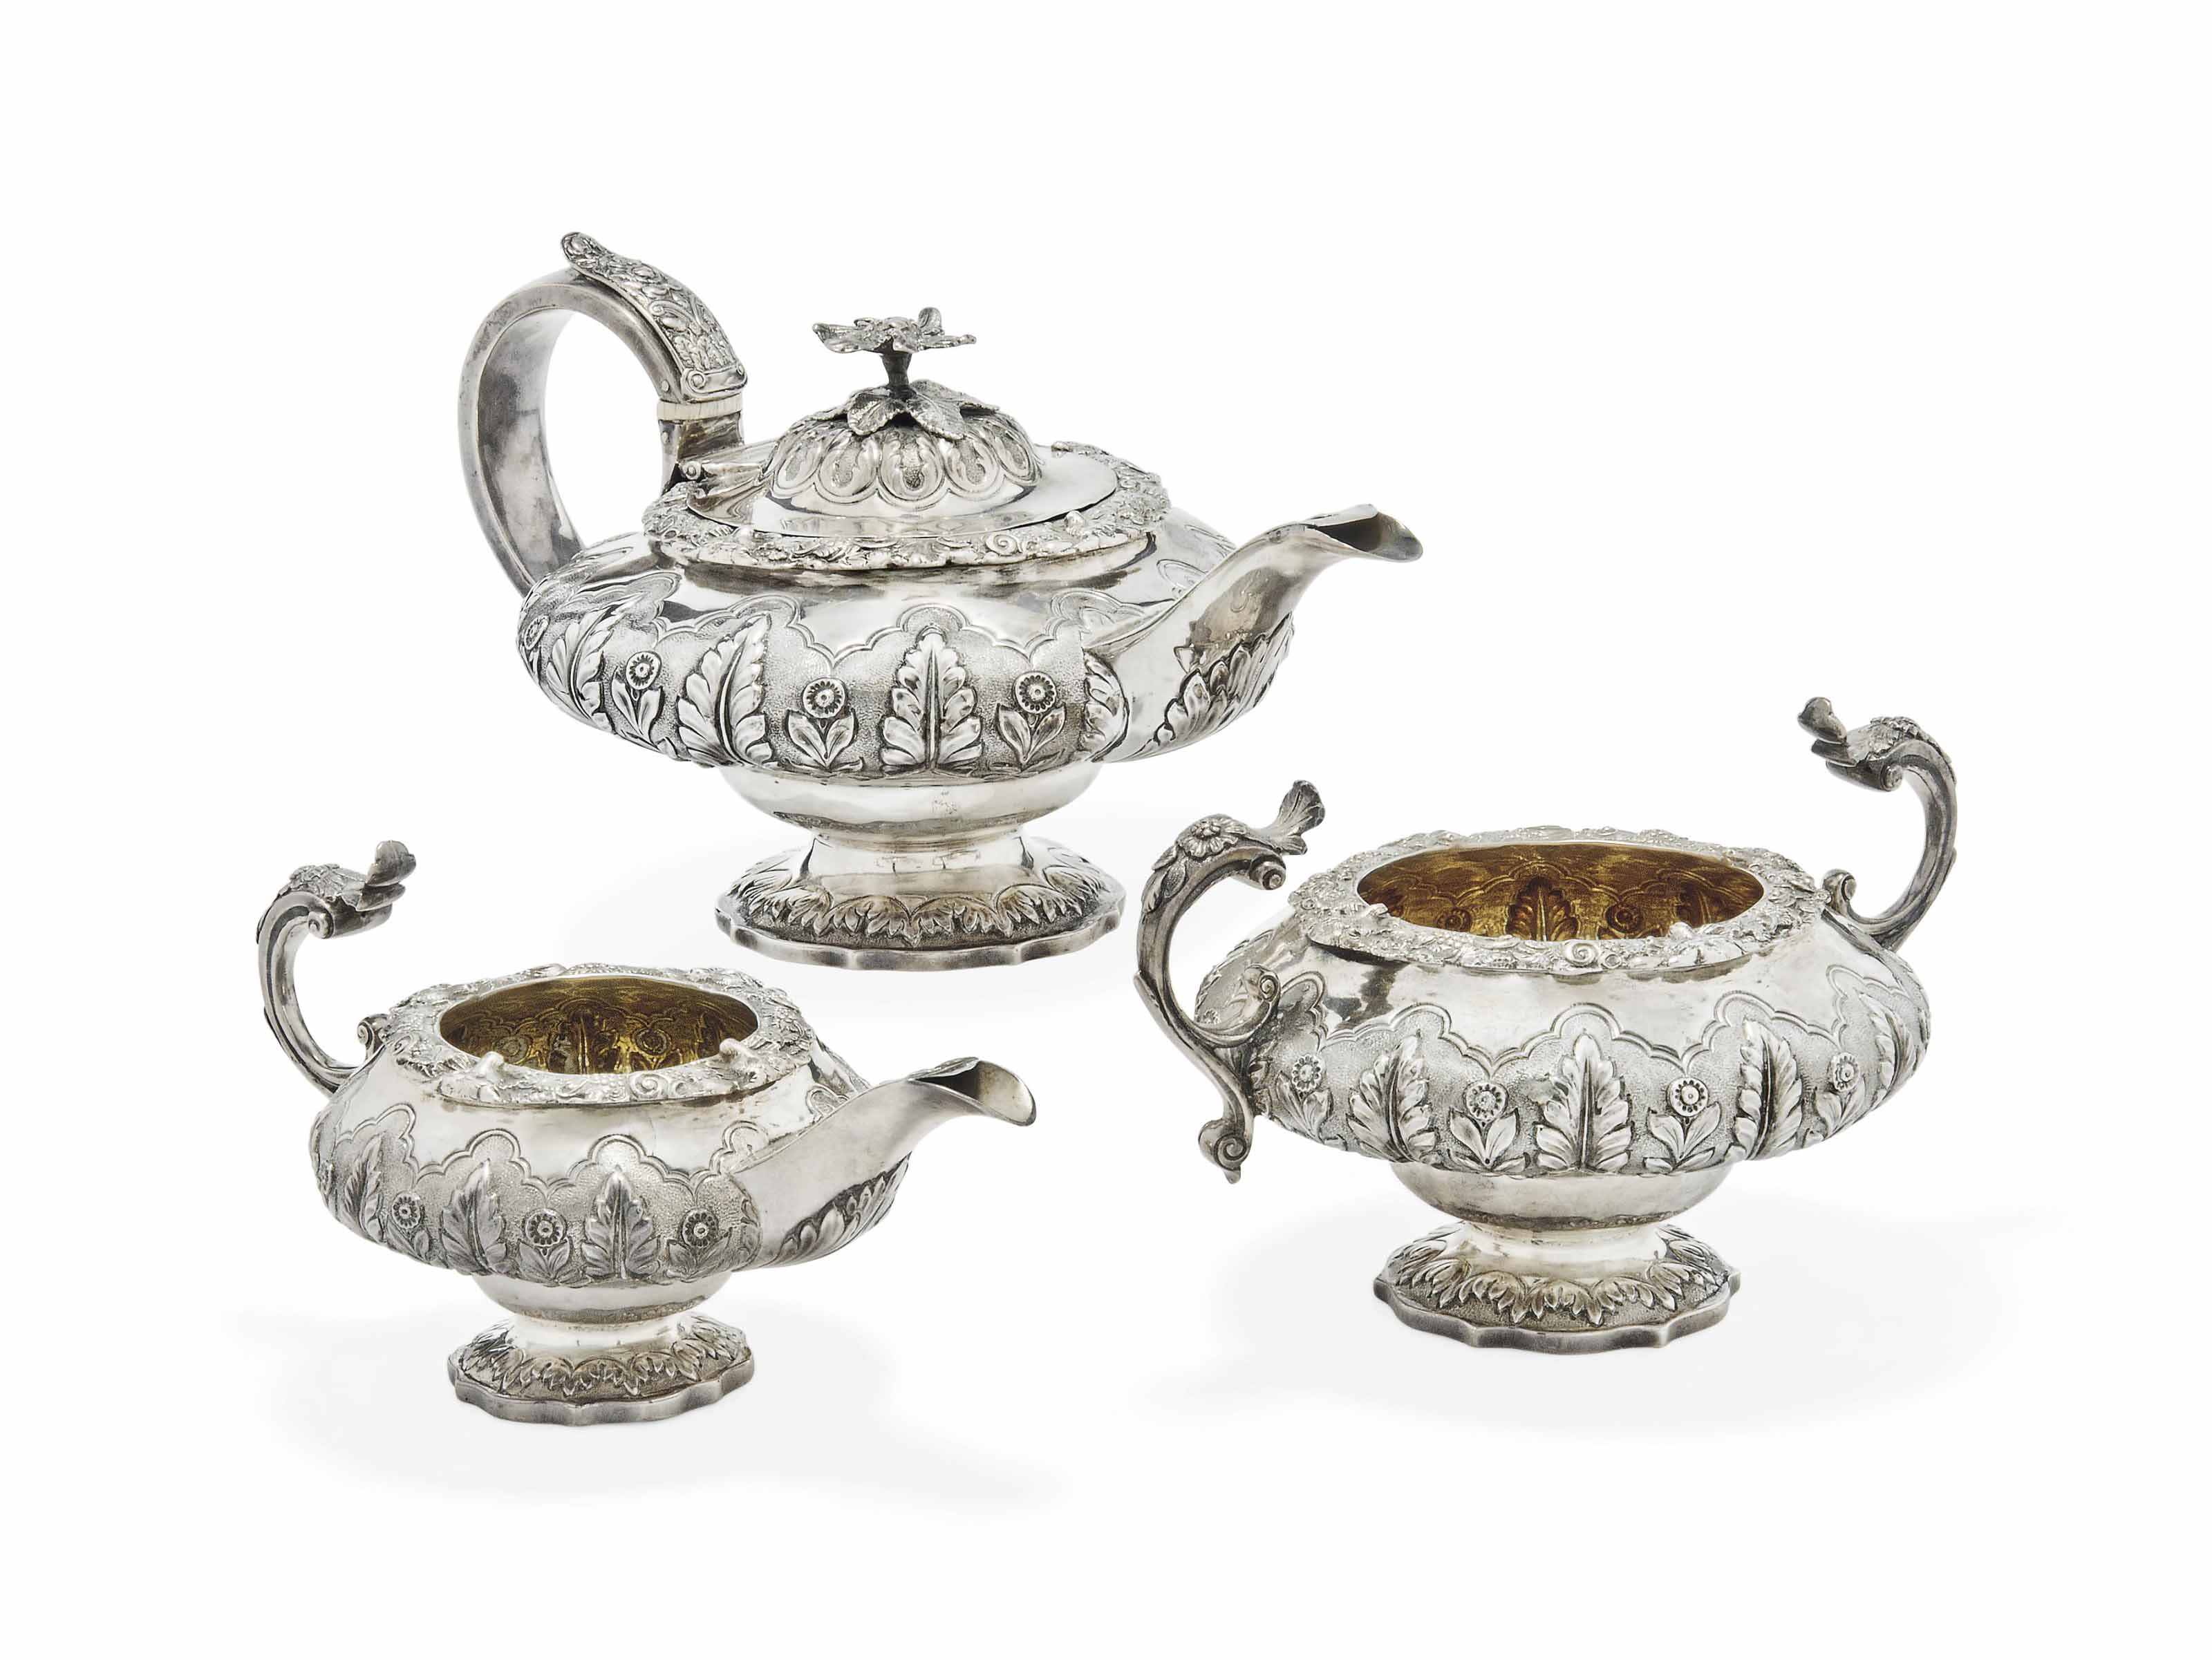 A GEORGE IV SILVER THREE-PIECE TEASET